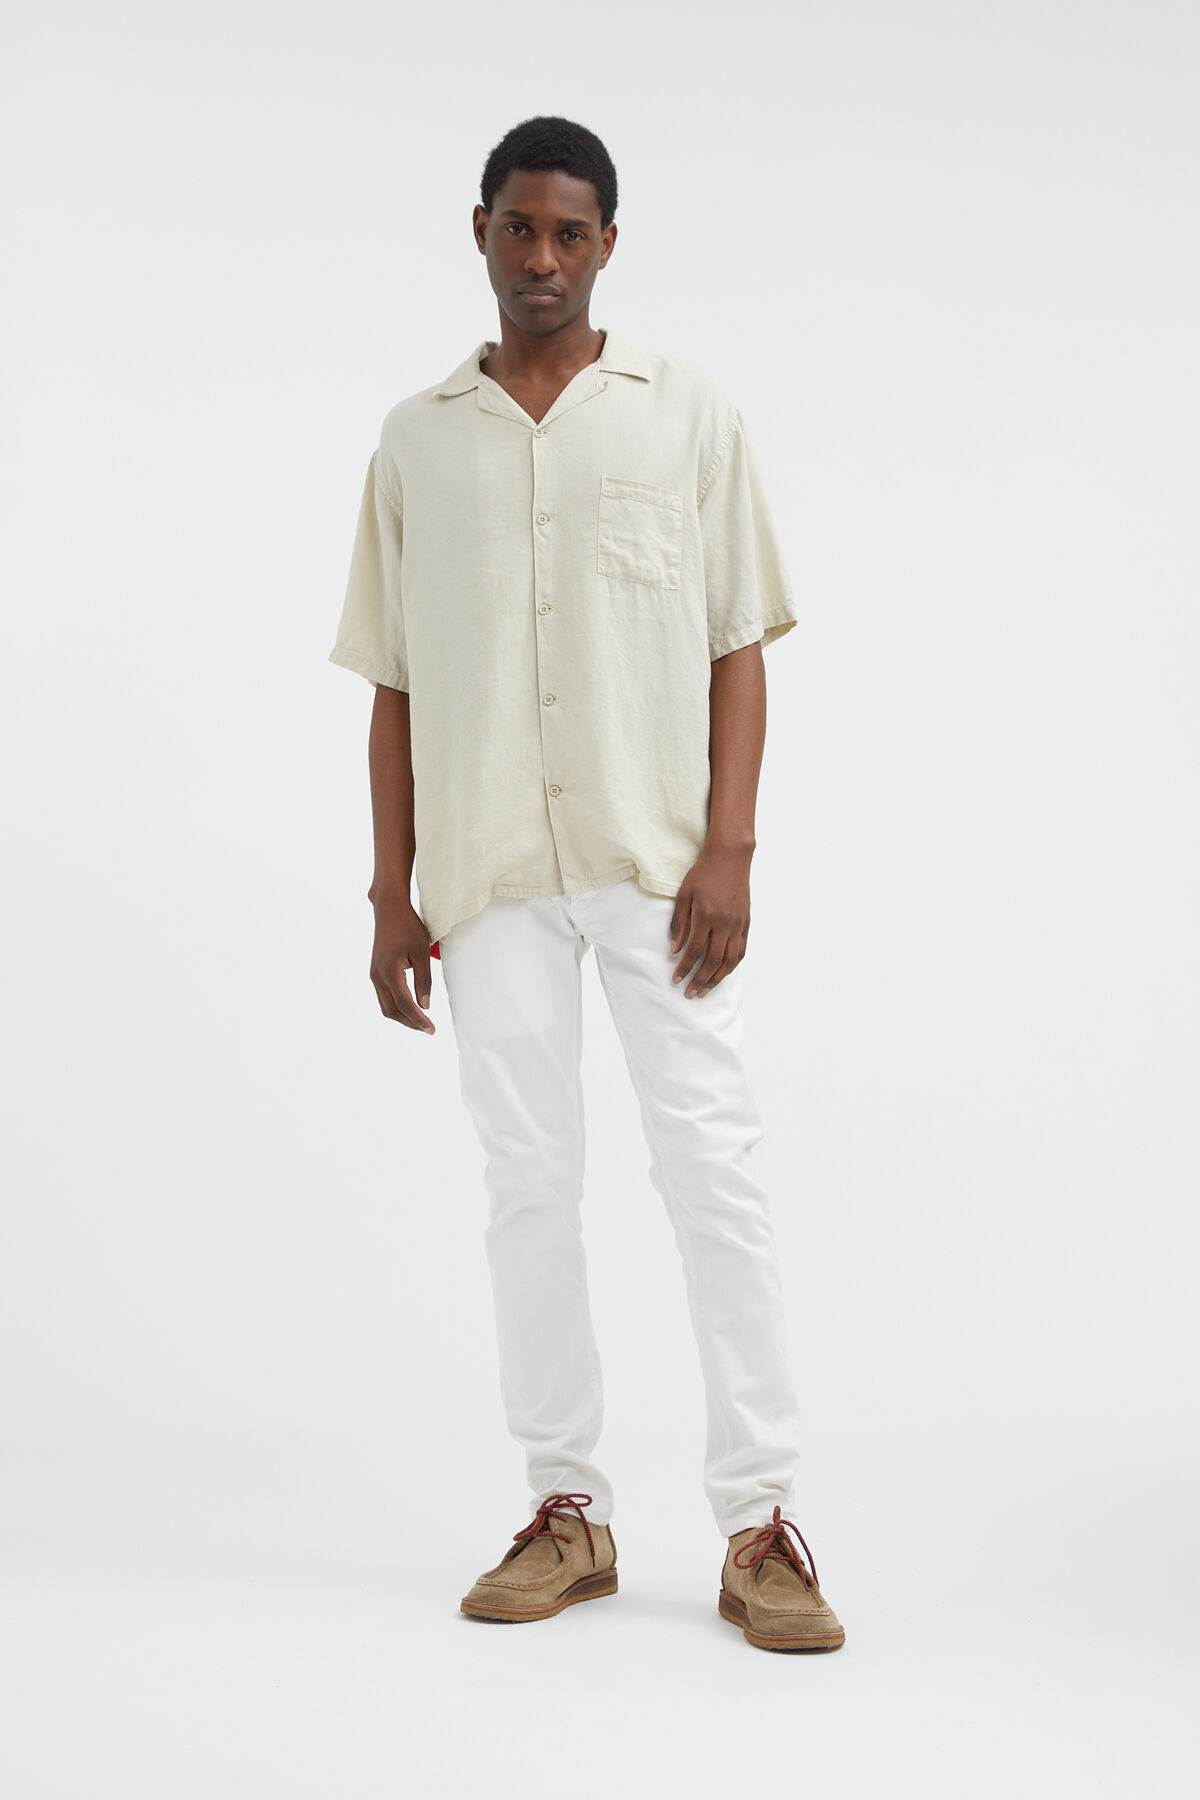 BOWLING SHIRT Tencel & Linen - Slim Fit